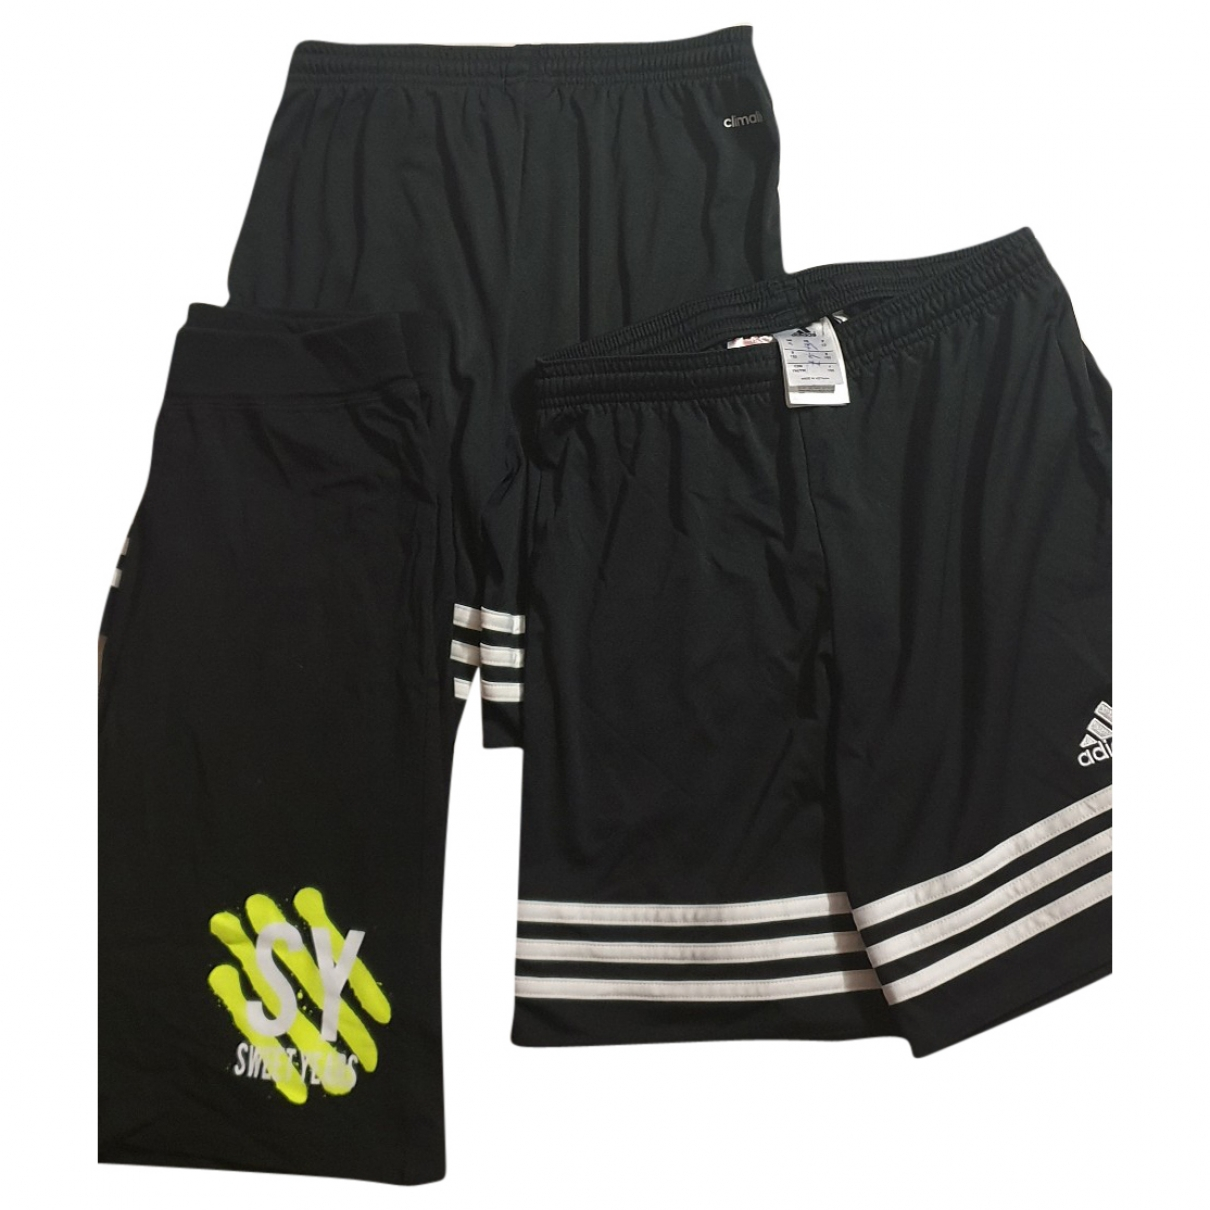 Adidas \N Black Shorts for Kids 12 years - XS UK